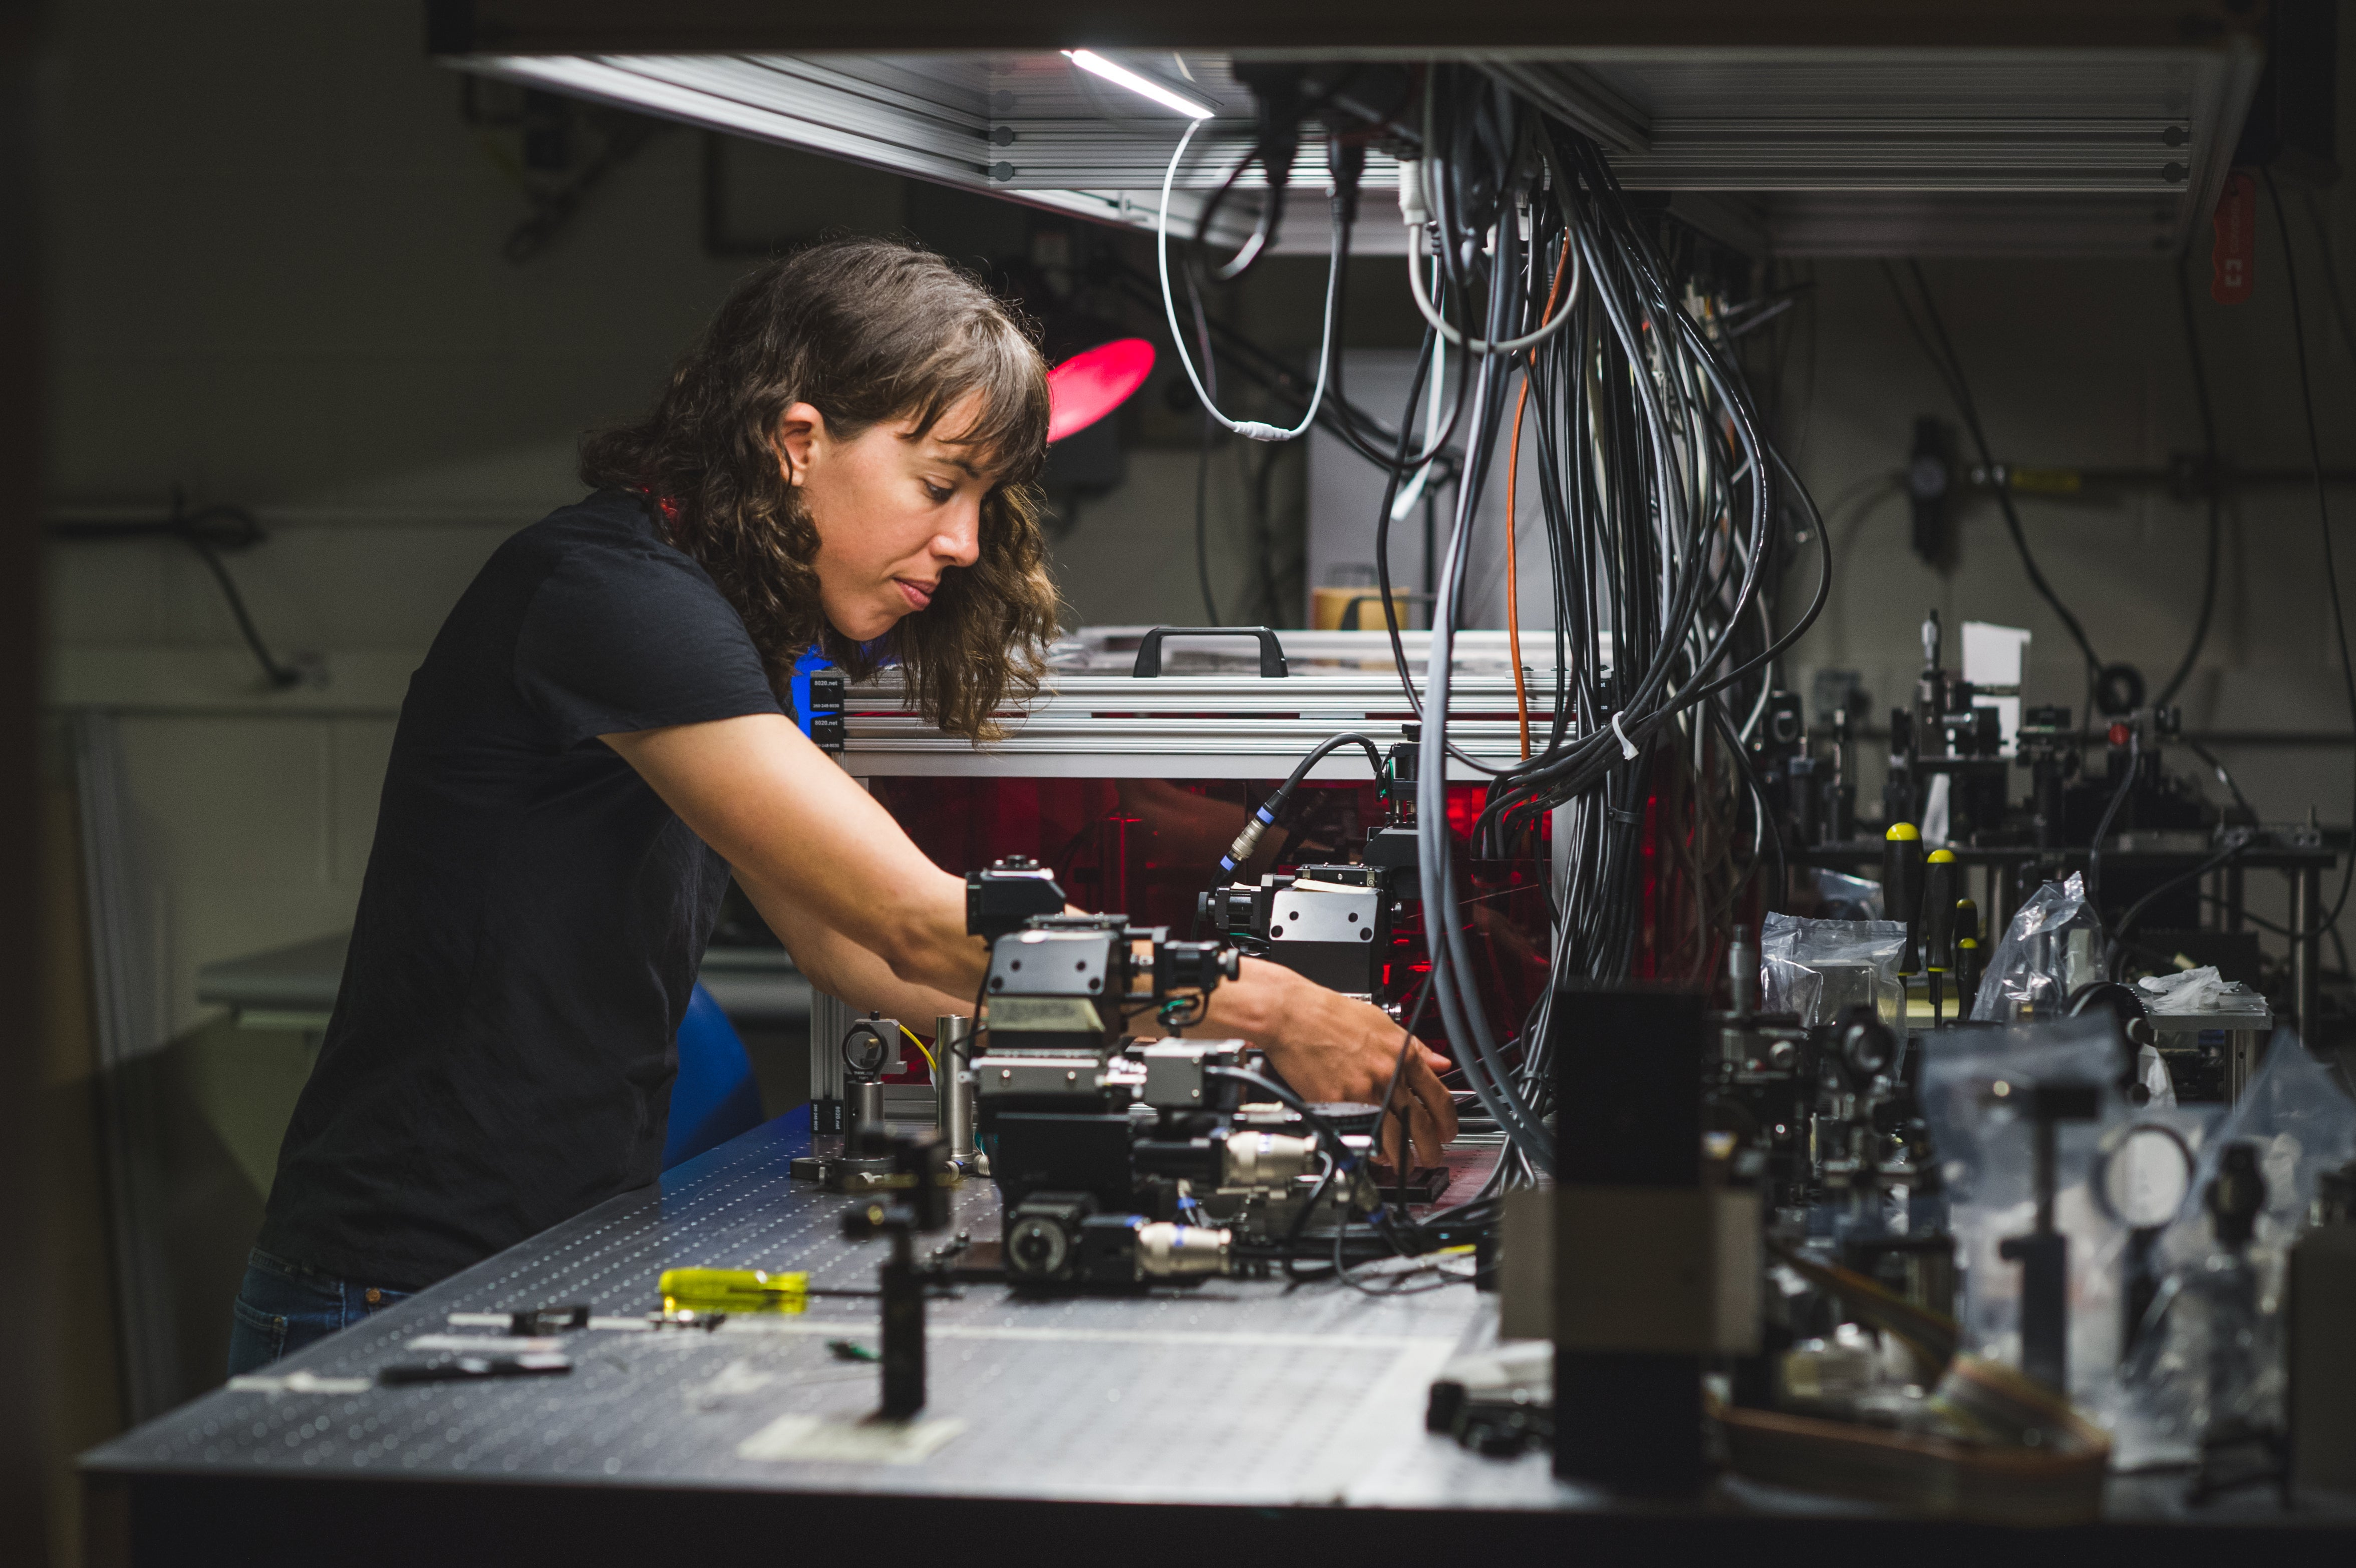 A grad student works on an optical project in her lab.